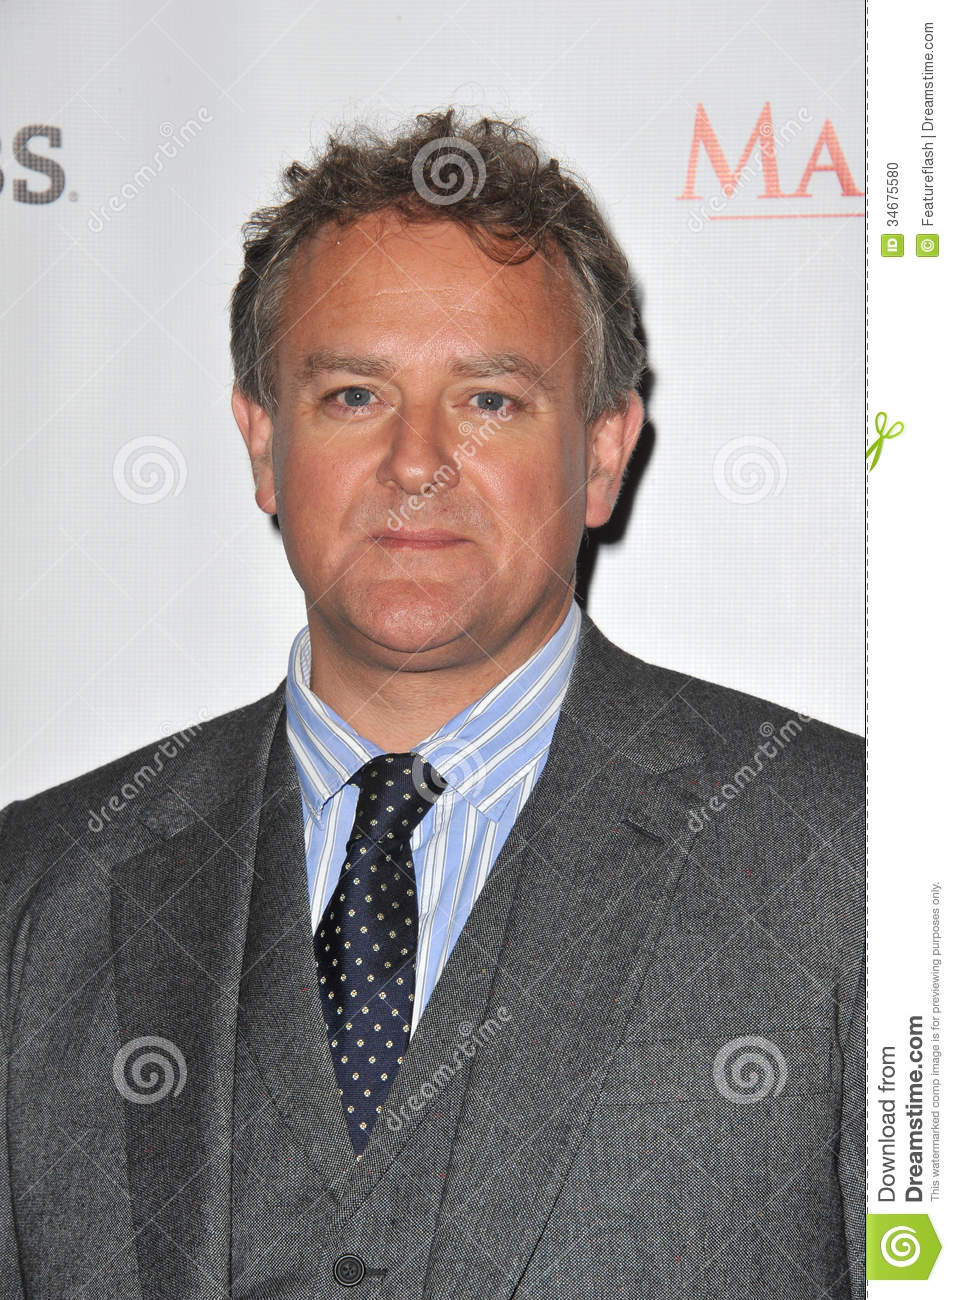 hugh bonneville paddingtonhugh bonneville young, hugh bonneville harry potter, hugh bonneville bbc, hugh bonneville house, hugh bonneville wiki, hugh bonneville bill murray, hugh bonneville notting hill, hugh bonneville height, hugh bonneville and elizabeth mcgovern, hugh bonneville instagram, hugh bonneville facebook, hugh bonneville private life, hugh bonneville imdb, hugh bonneville downton abbey, hugh bonneville graham norton, hugh bonneville top gear, hugh bonneville paddington, hugh bonneville interview, hugh bonneville biography, hugh bonneville family